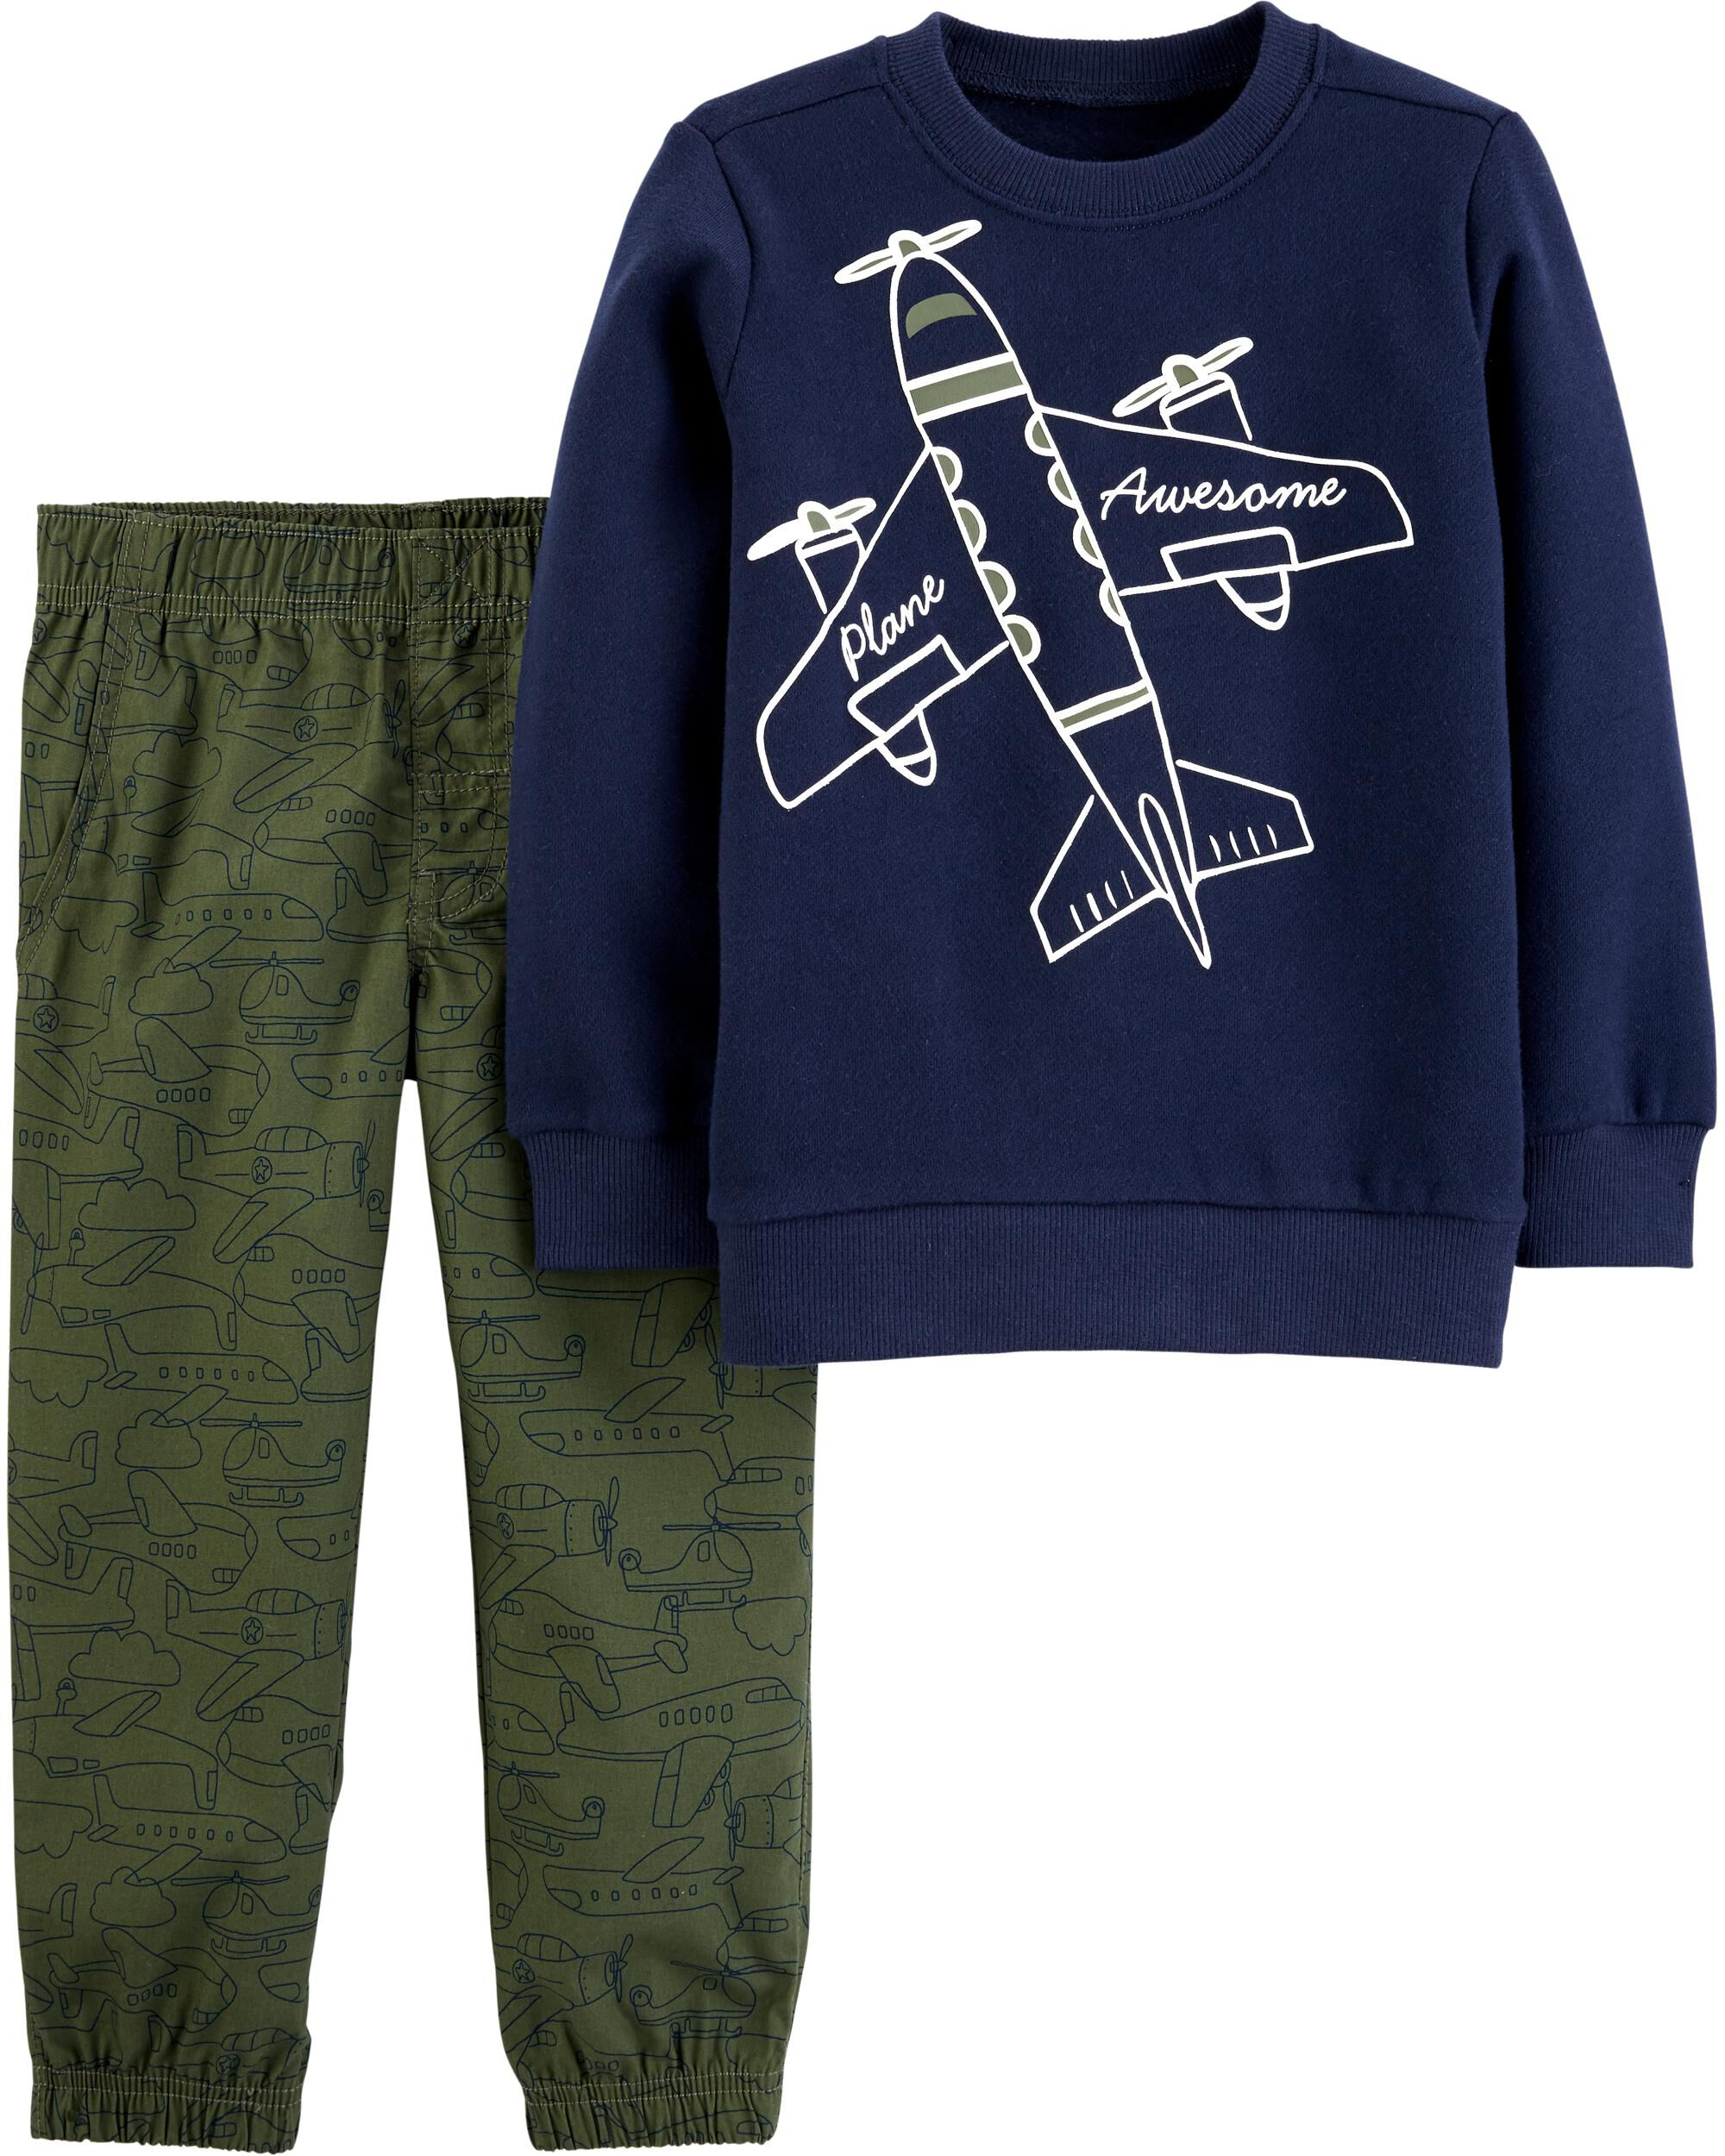 New Carter/'s Airplanes Boys Long Sleeve Shirt Top Blue Size 10,12,14